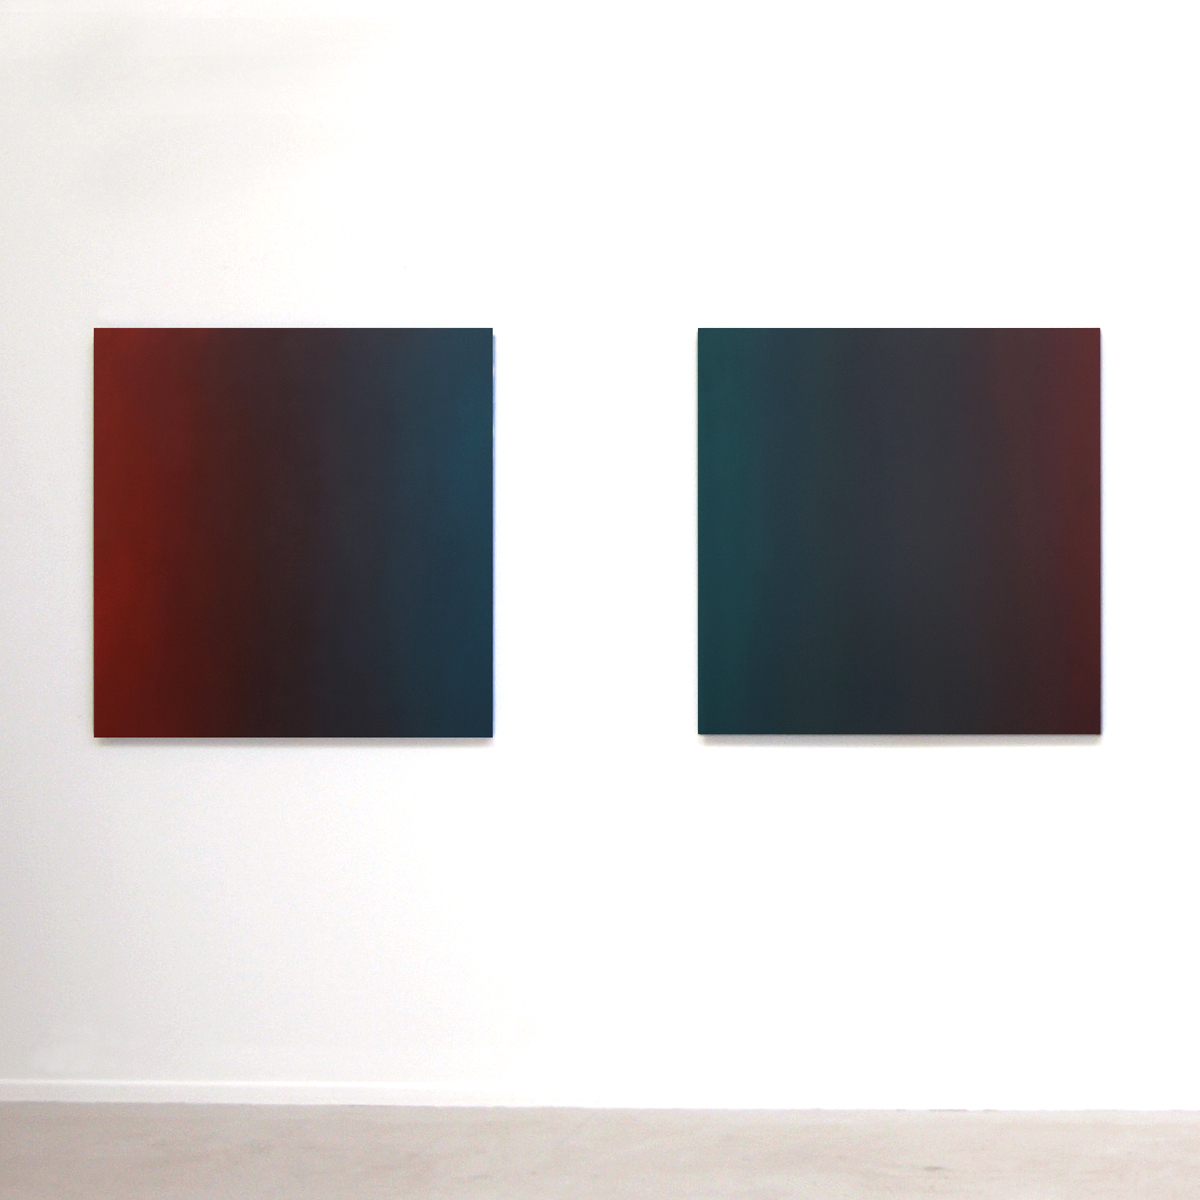 l. to r. Sighted and Tempted (Red Green), Limitless Series, 2009, oil on canvas, 40 x 40 in. (102 x 102 cm.) each